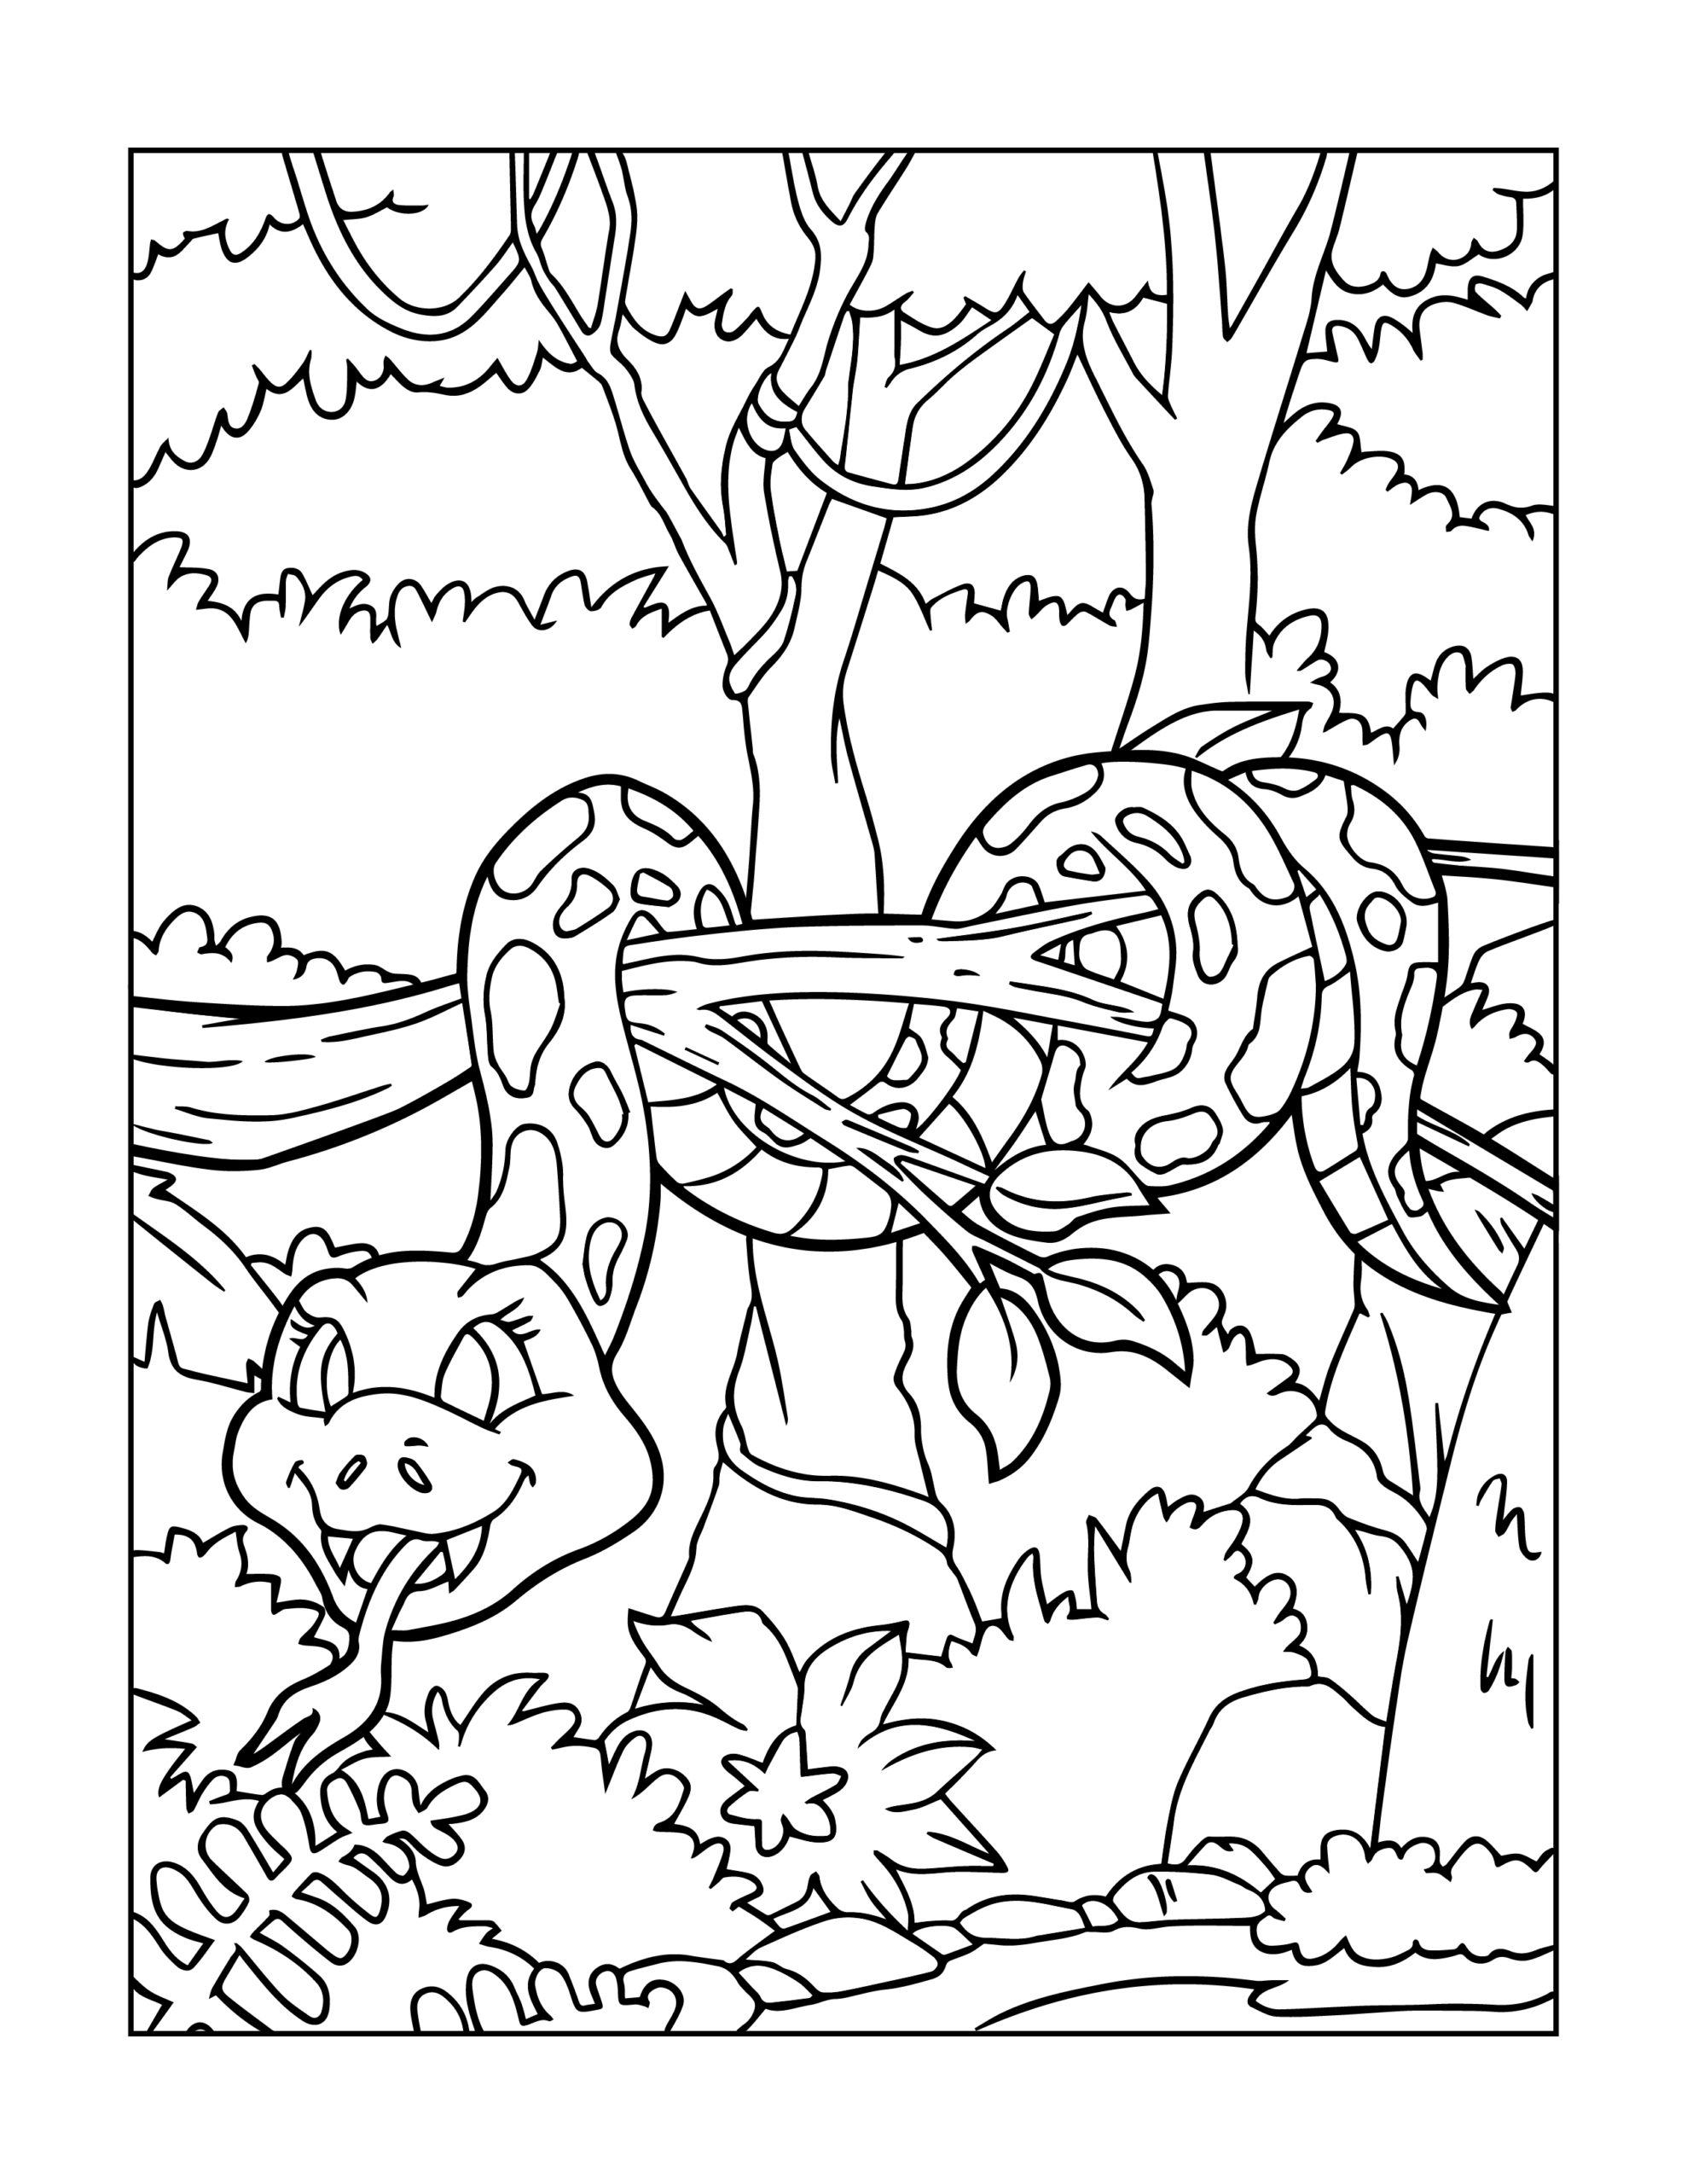 coloring pages zoo zoo animal coloring page 2 pages zoo coloring